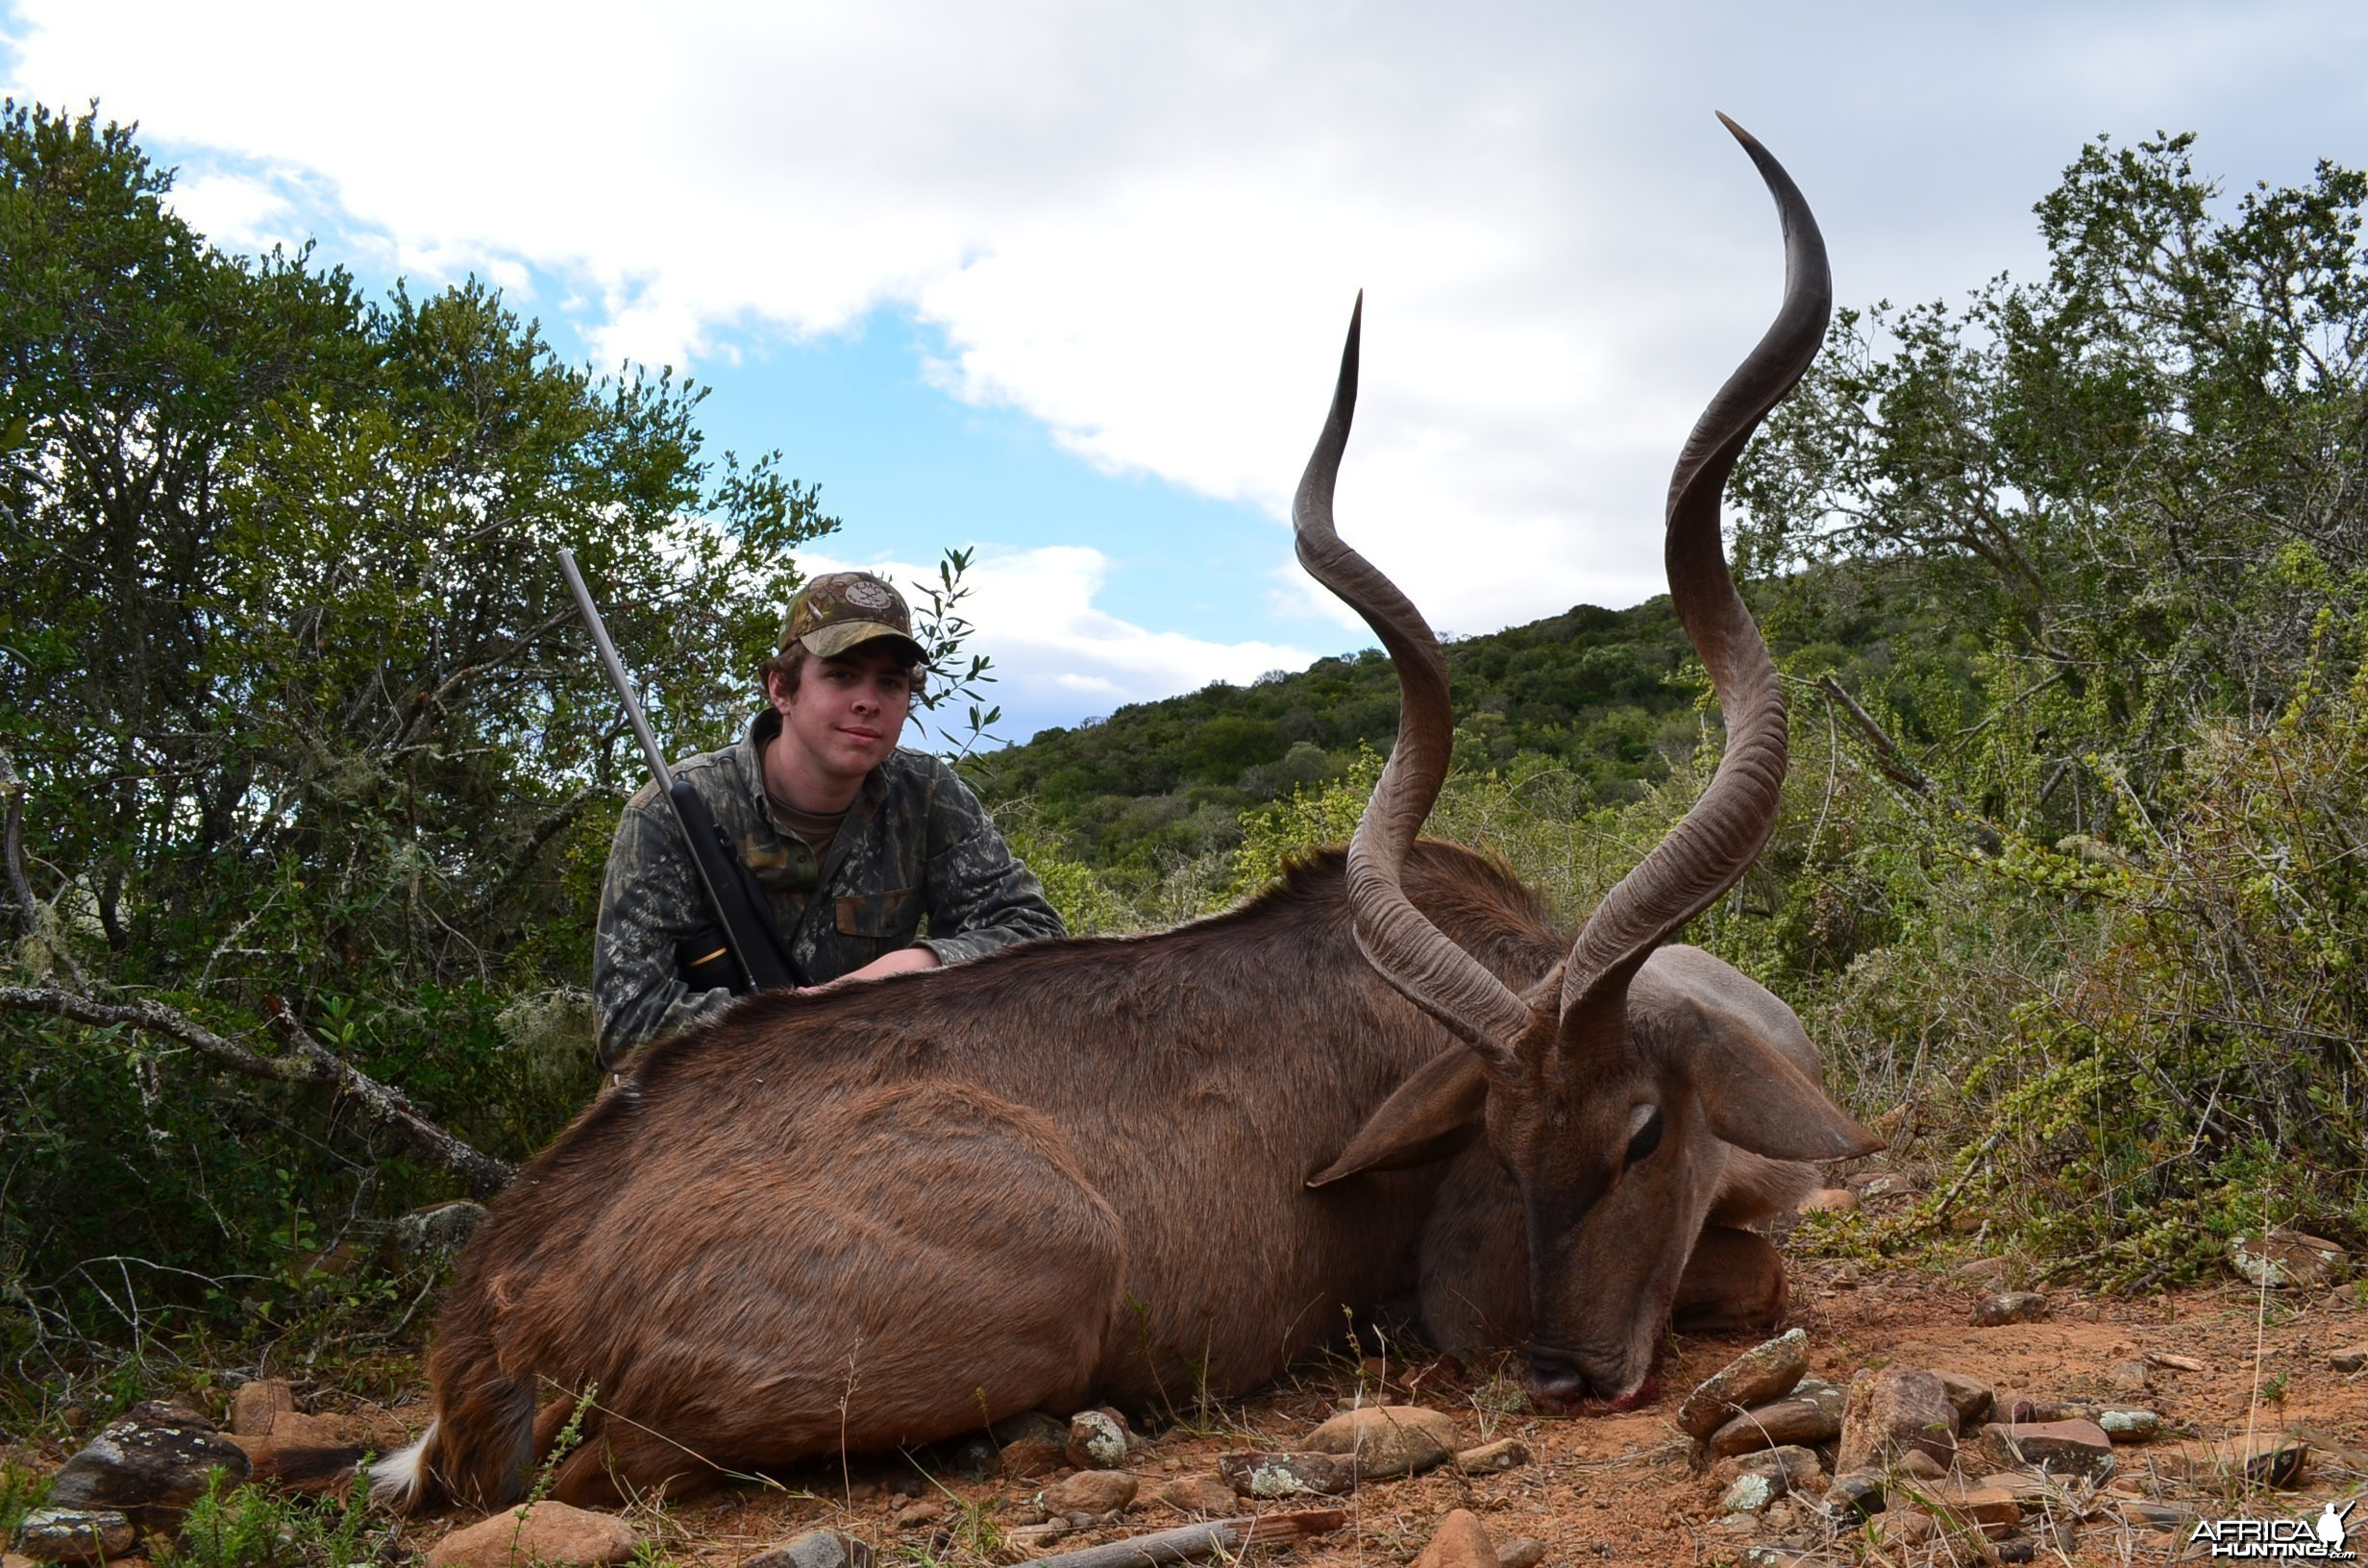 Kudu KMG Hunting Safaris